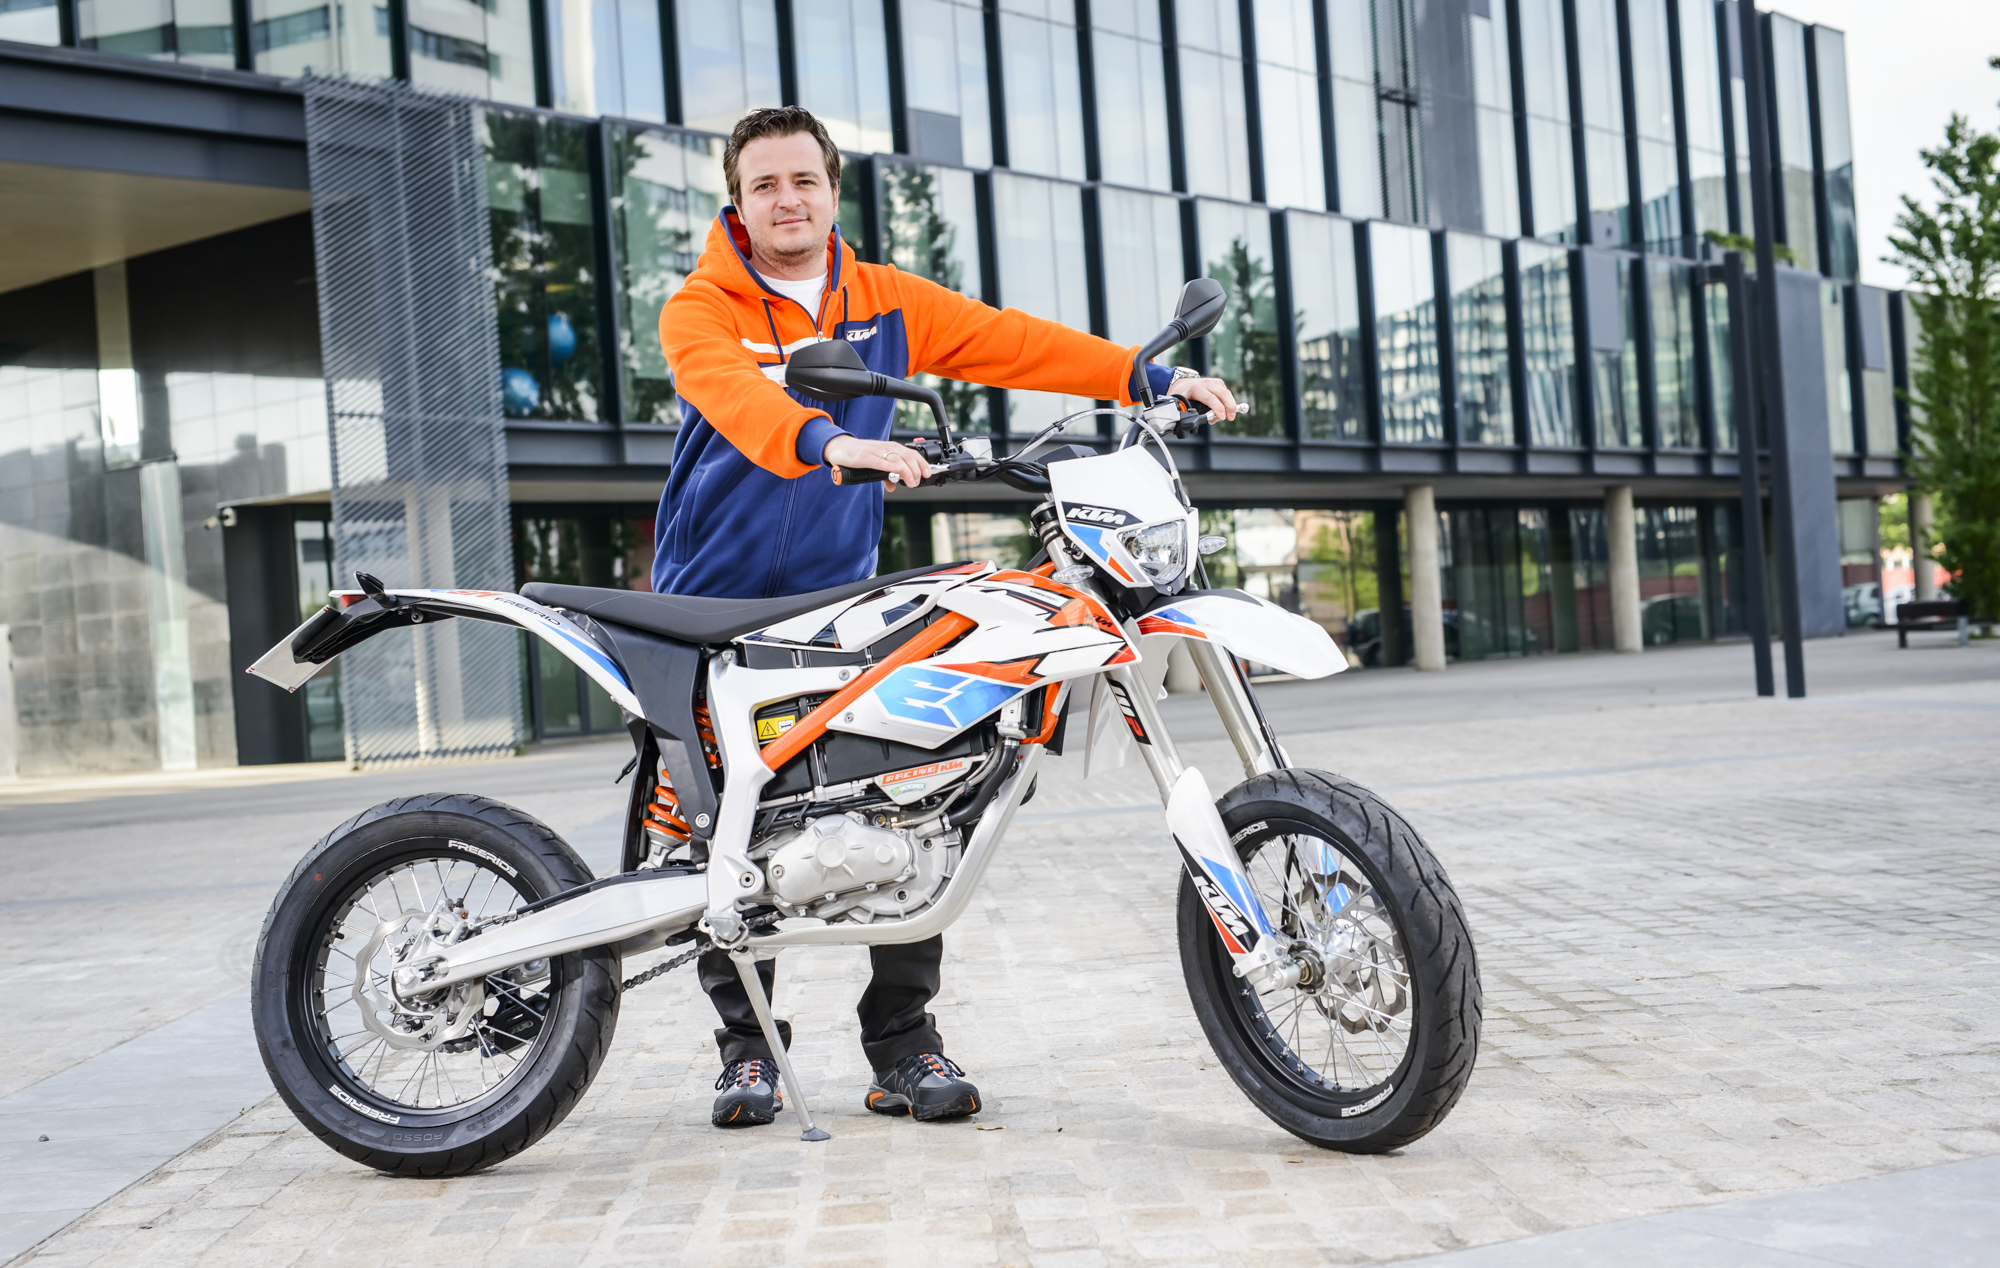 Ktm Freeride E Sm >> Interview Of The Month Arno Ebner About Ktm Freeride E Sm Ktm Blog